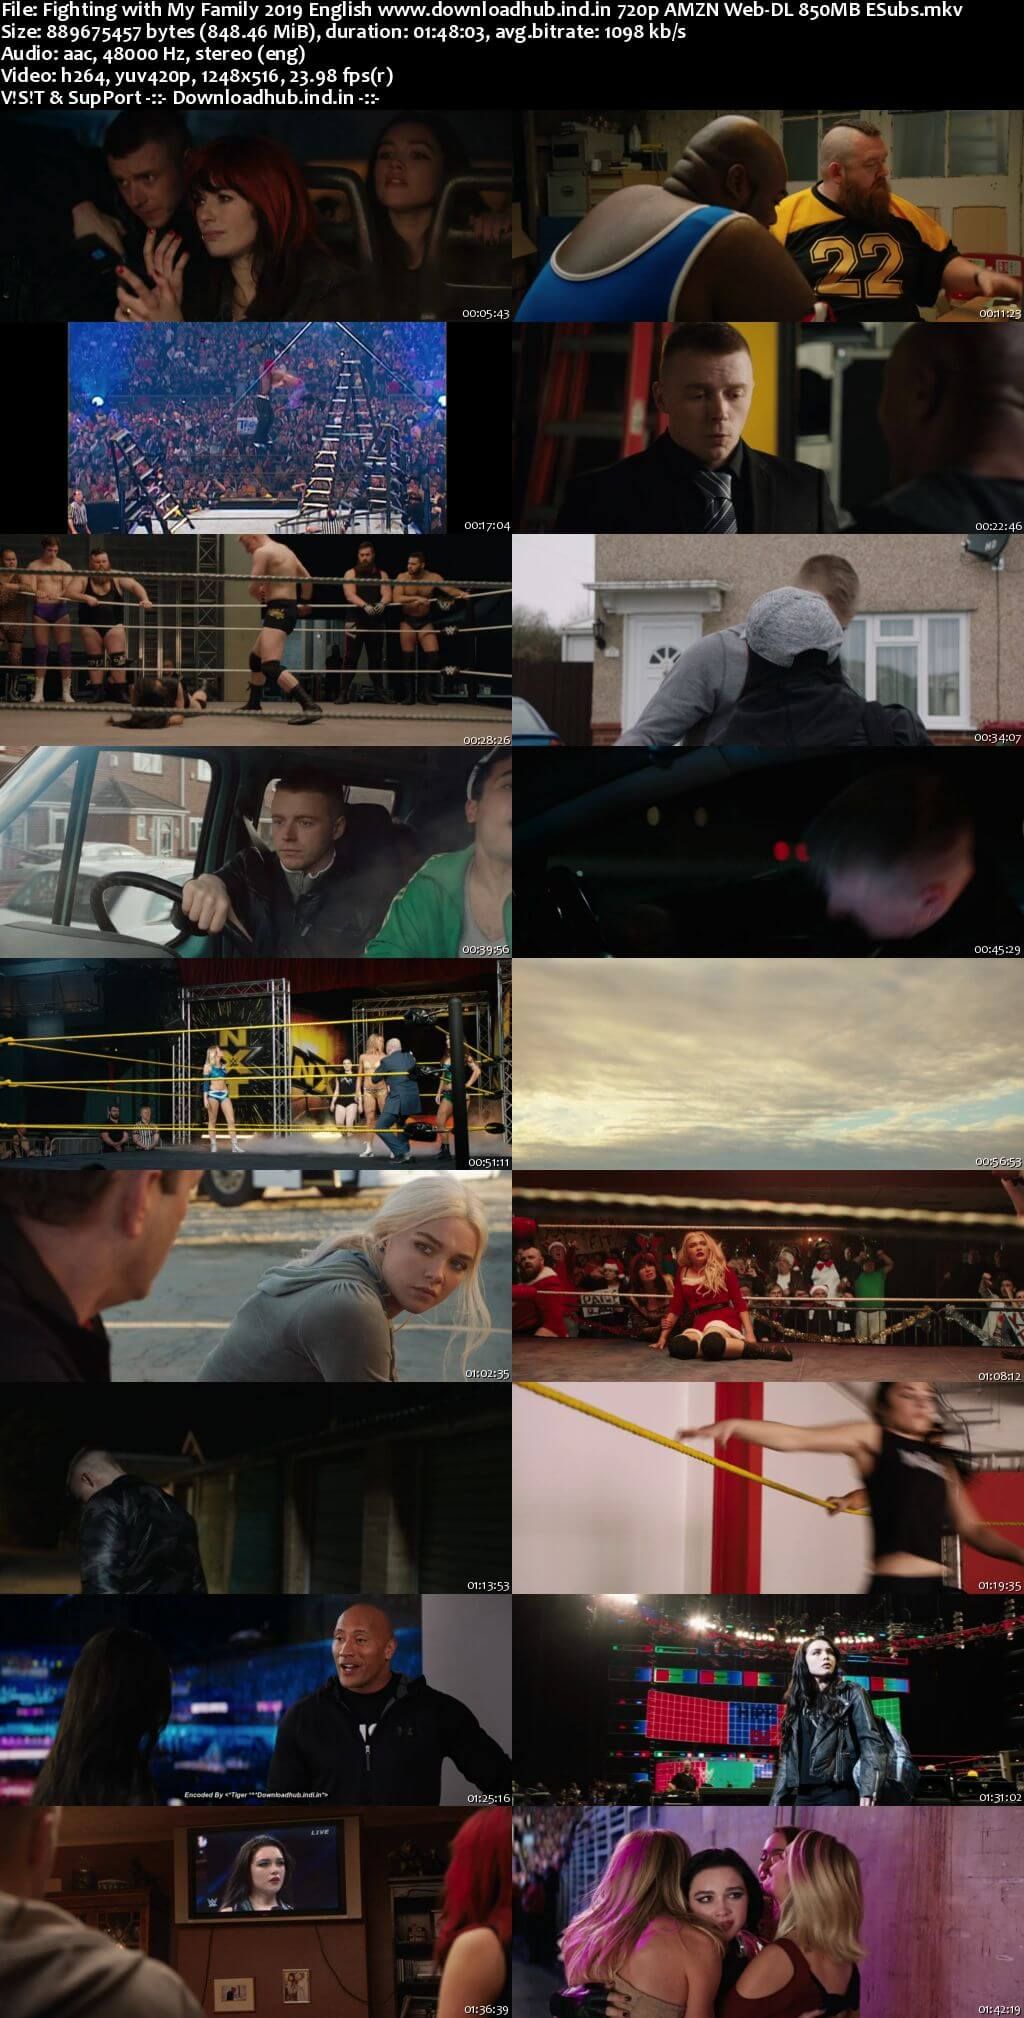 Fighting with My Family 2019 English 720p AMZN Web-DL 850MB ESubs